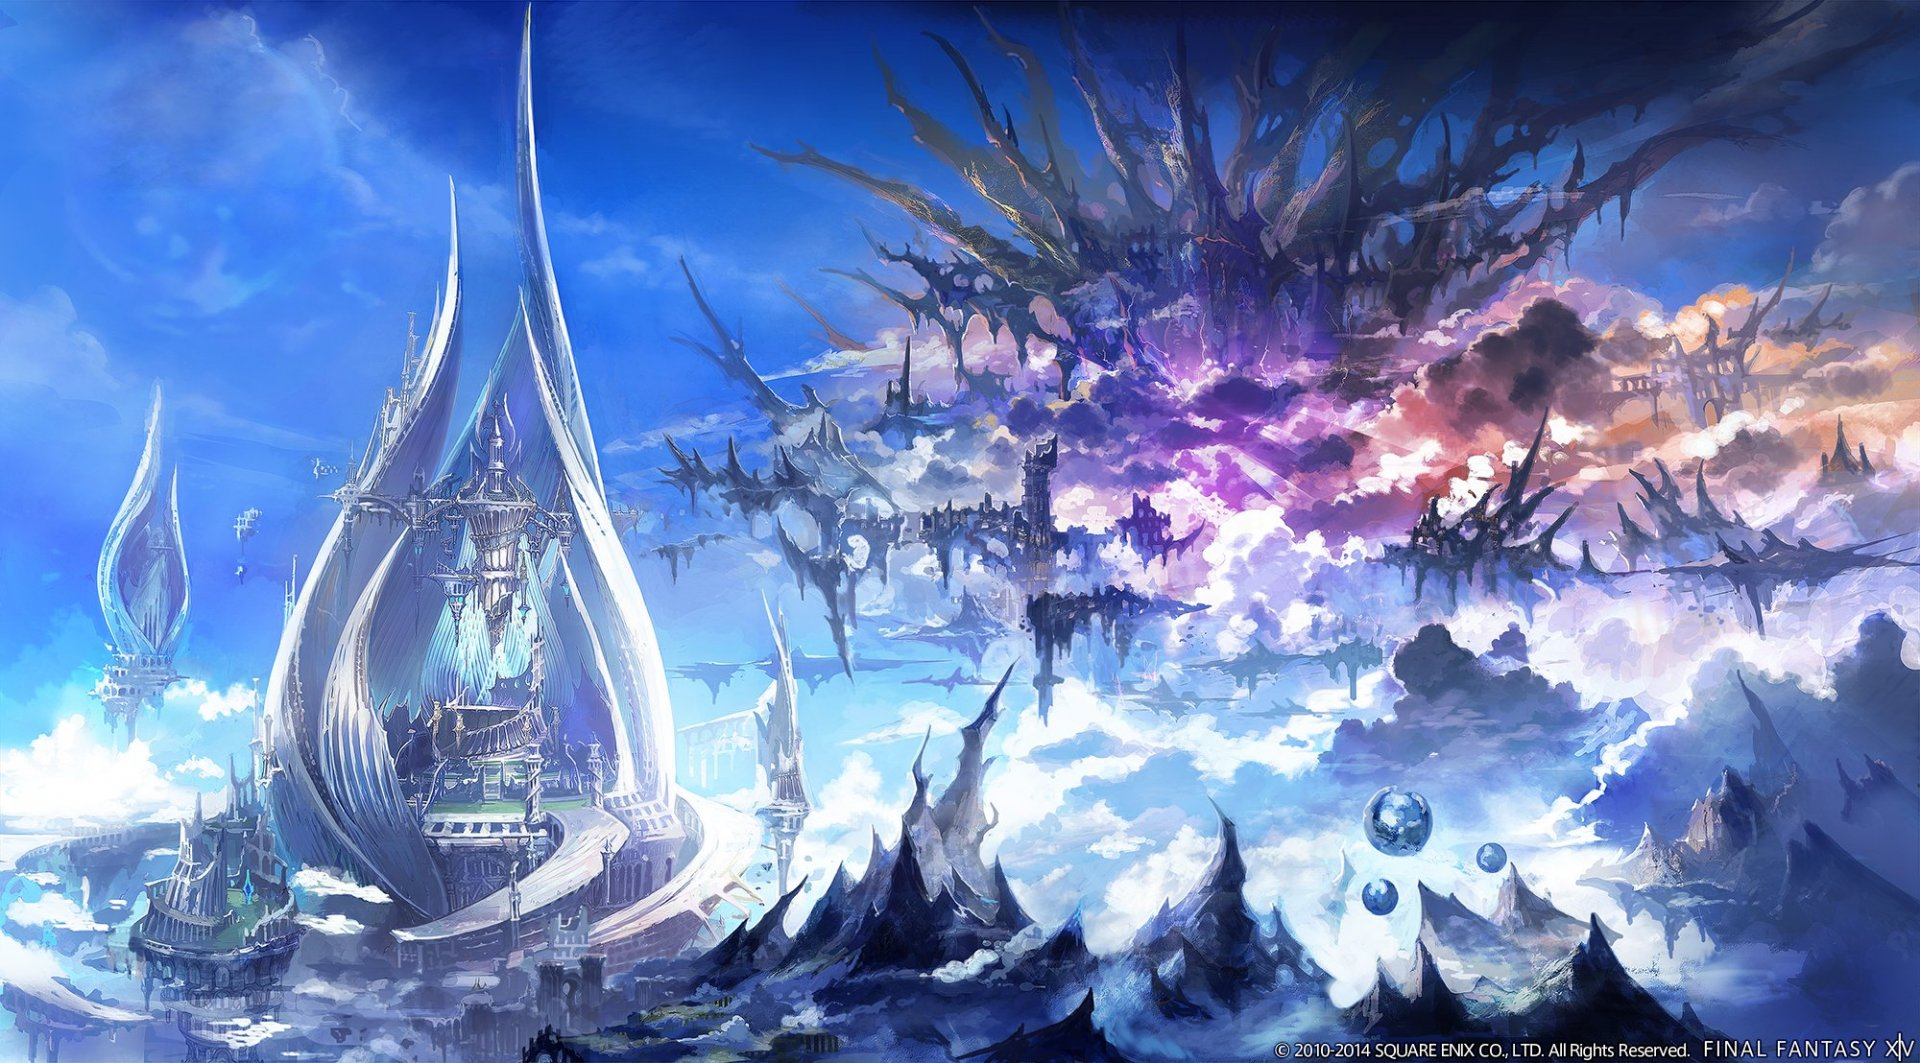 39 final fantasy xiv a realm reborn hd wallpapers. What 39 S Your Favorite Video Game Concept Art Art In